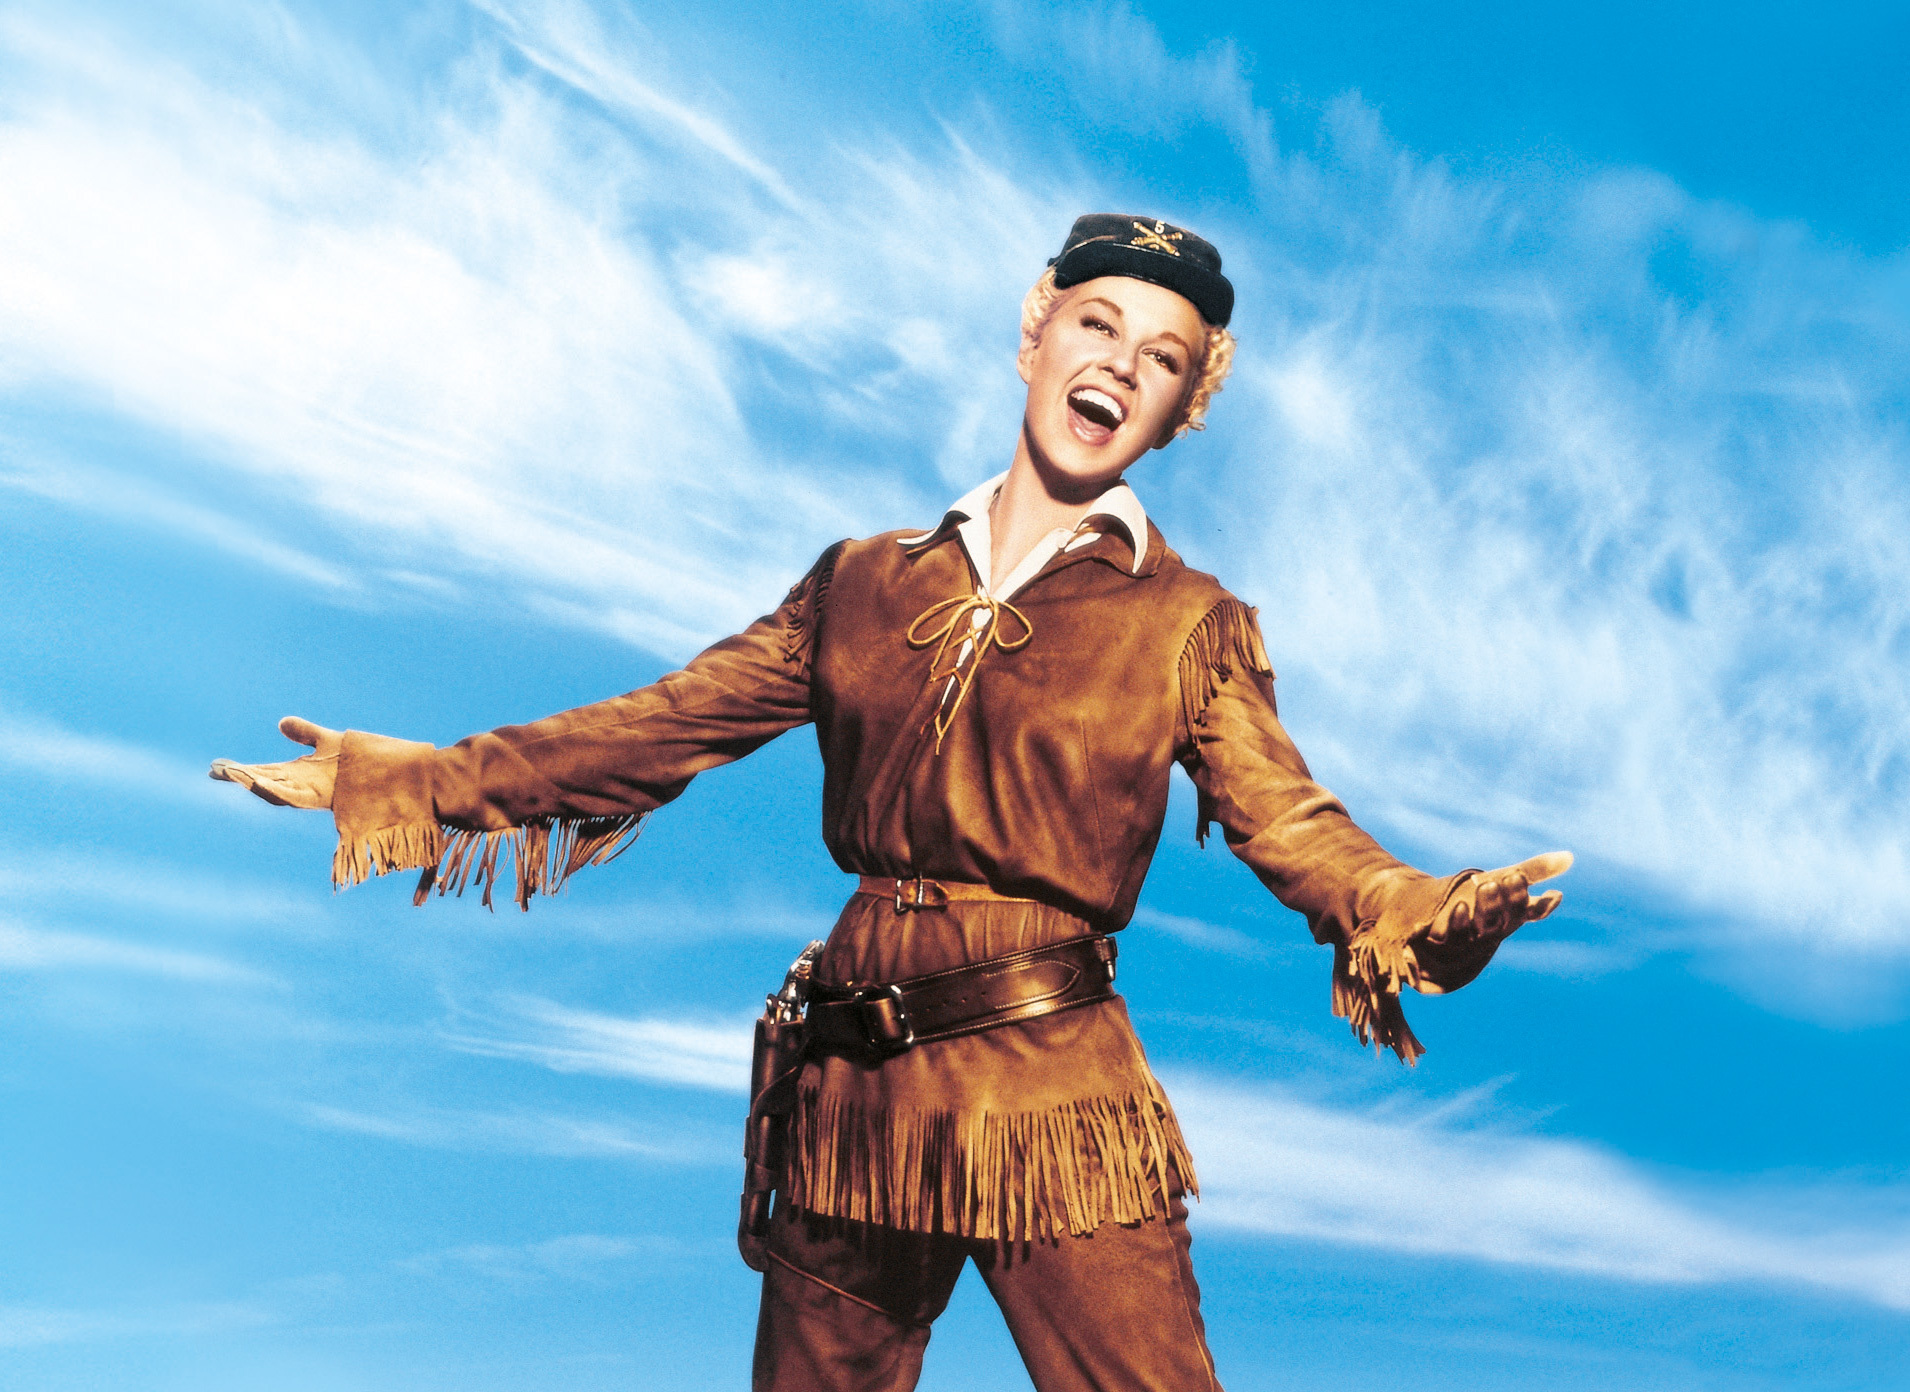 Whip crack away to the Regent for Calamity Jane sing-a-long